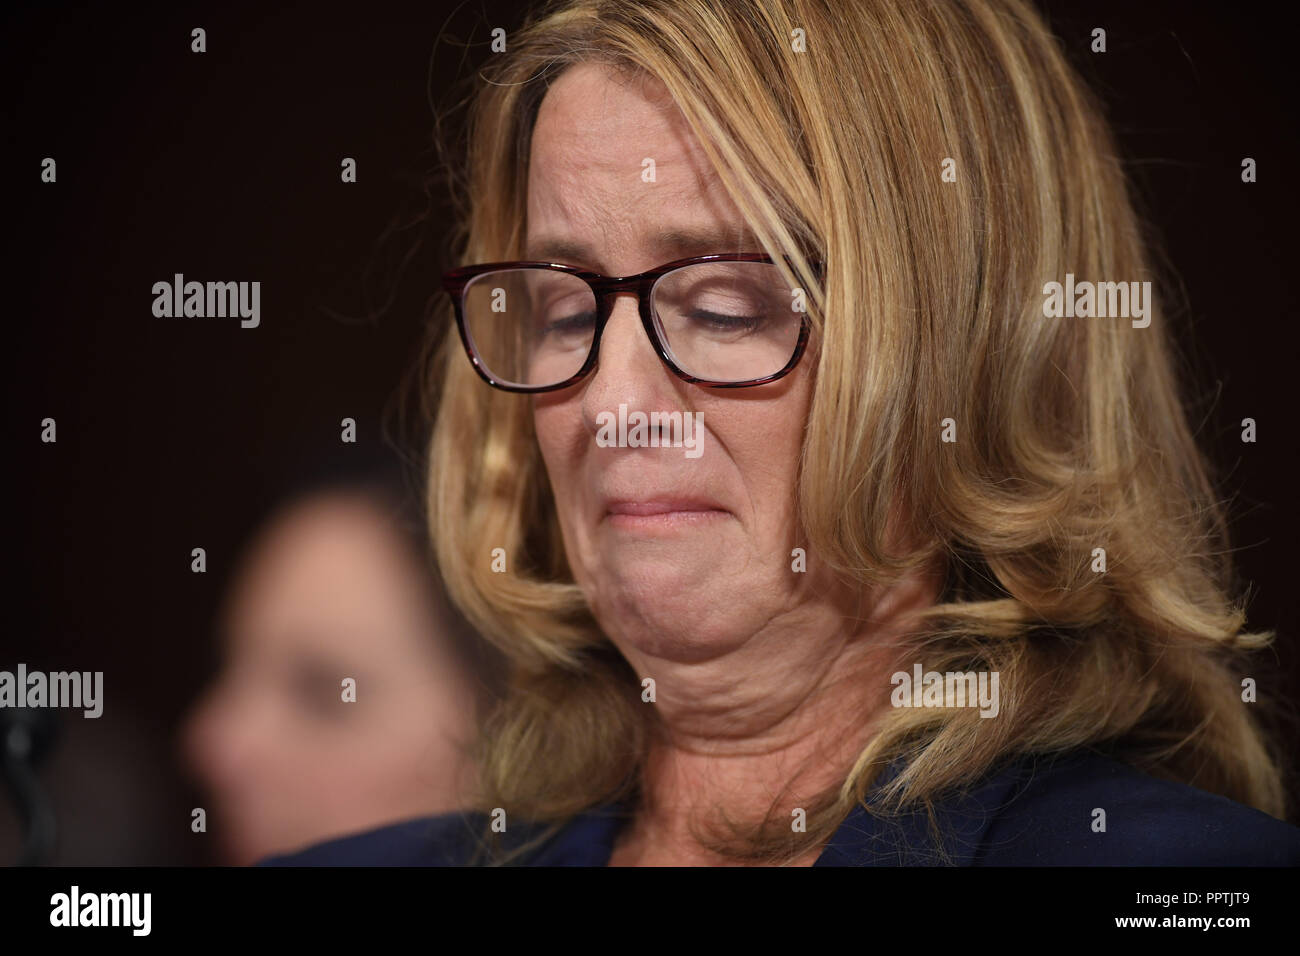 Christine Blasey Ford, the woman accusing Supreme Court nominee Brett Kavanaugh of sexually assaulting her at a party 36 years ago, testifies before the US Senate Judiciary Committee on Capitol Hill in Washington, DC, September 27, 2018.  / POOL / SAUL LOEB   usage worldwide Stock Photo